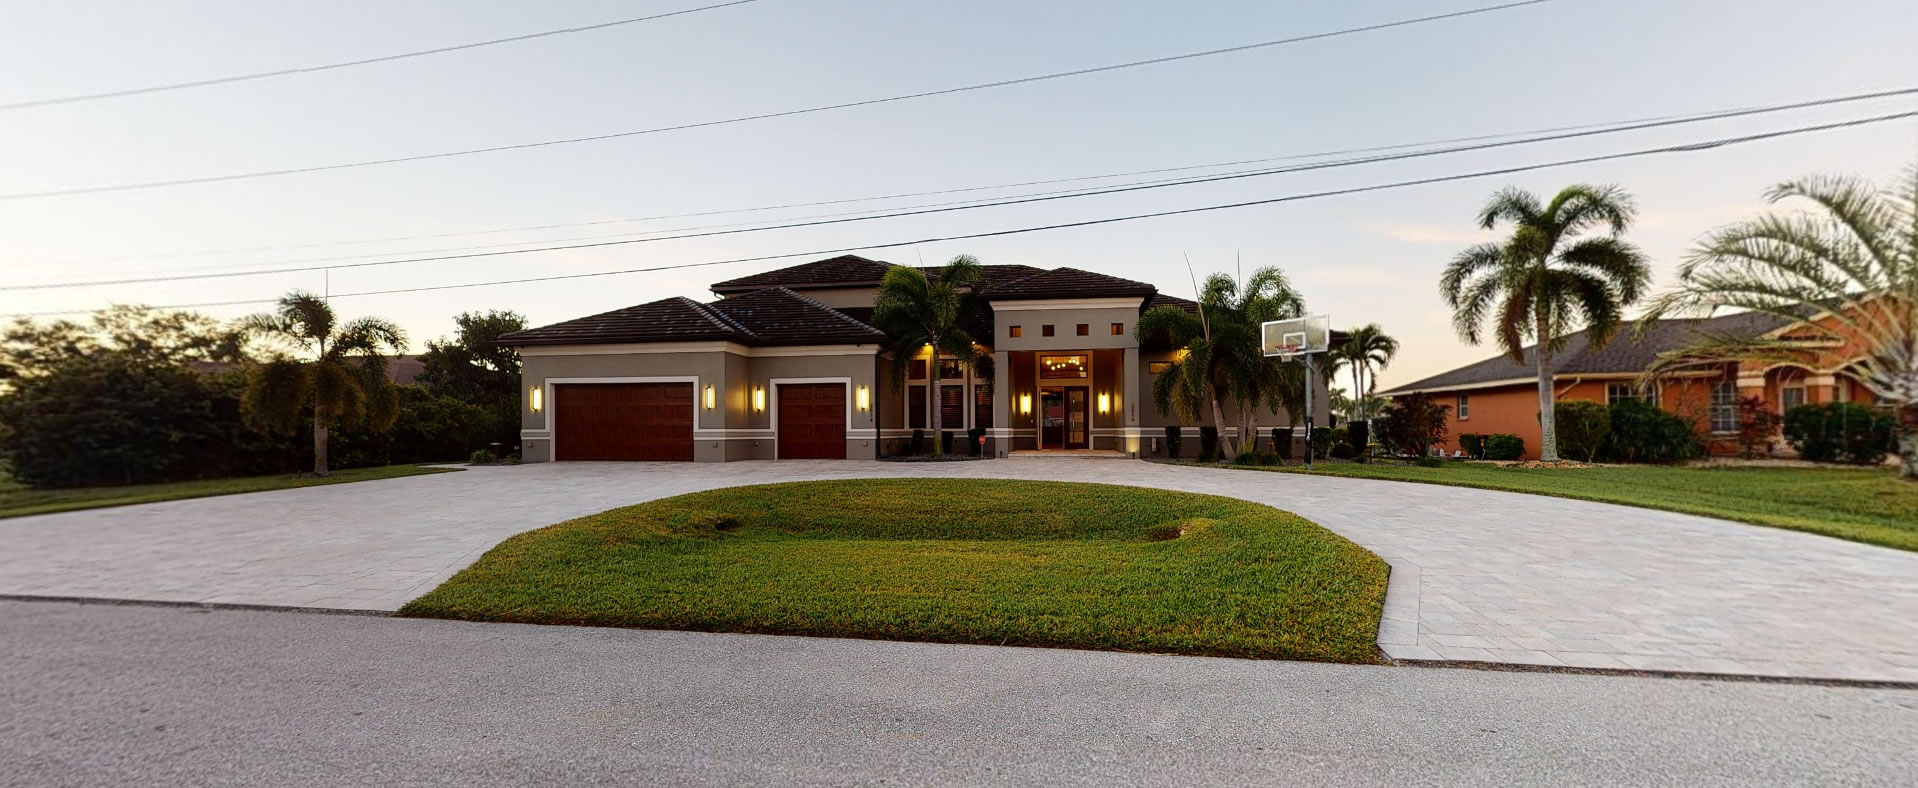 Exisiting Cape Coral Home for sale - sinclair custom homes